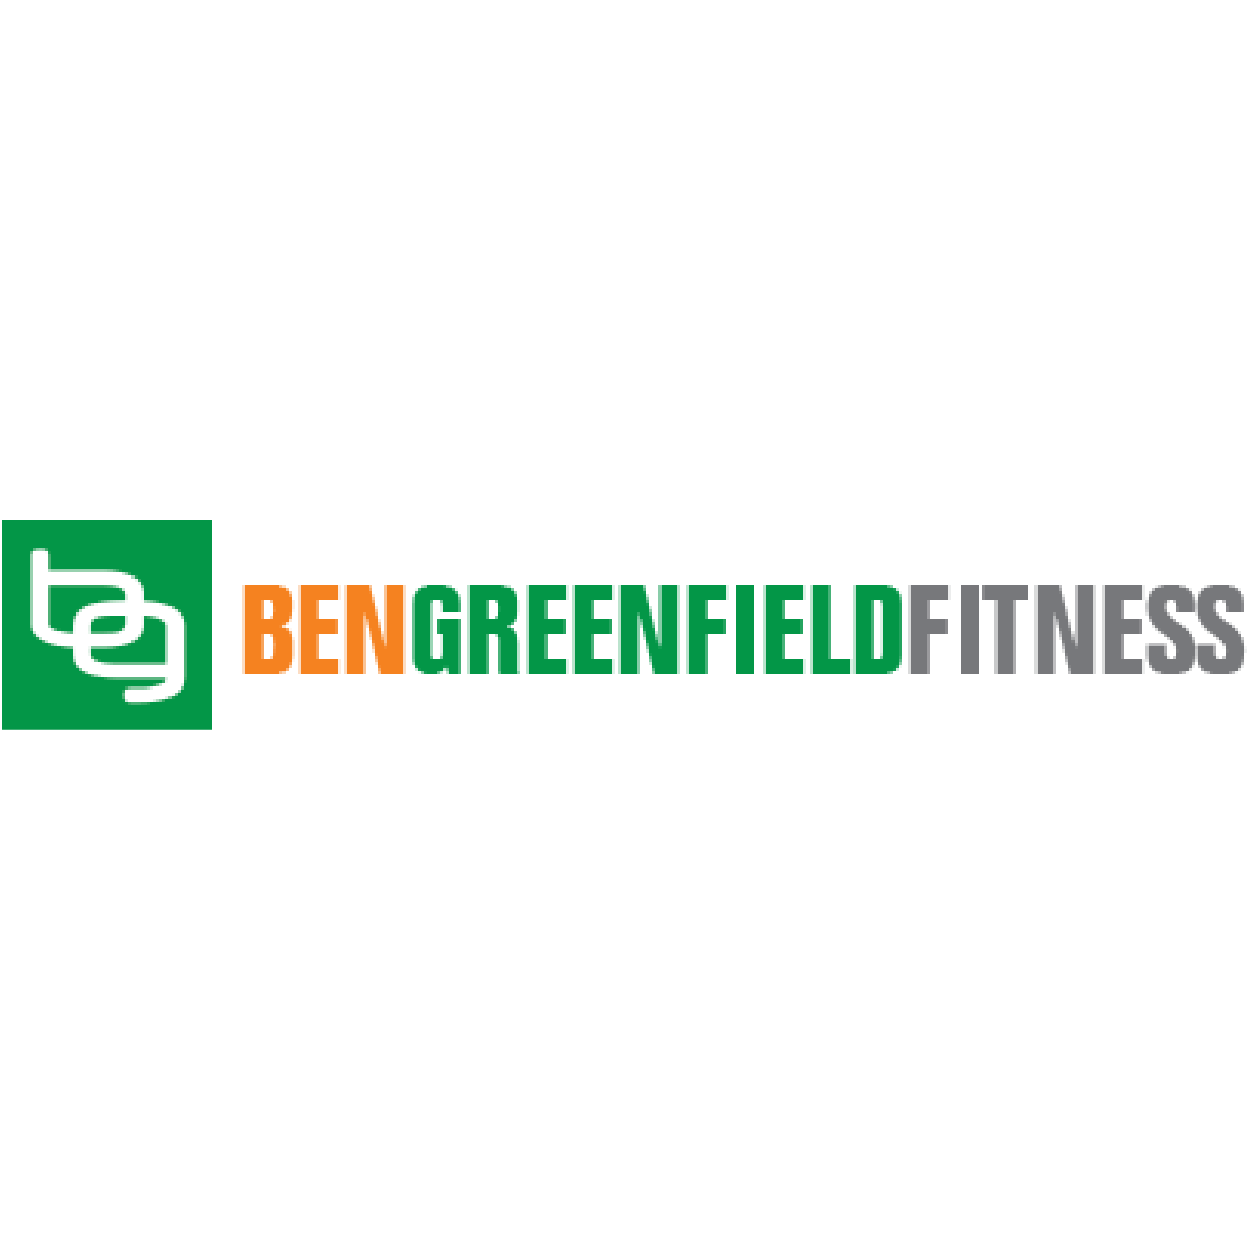 THE BREATHING CLASS PRESS LOGOS_ben greenfield fitness.png